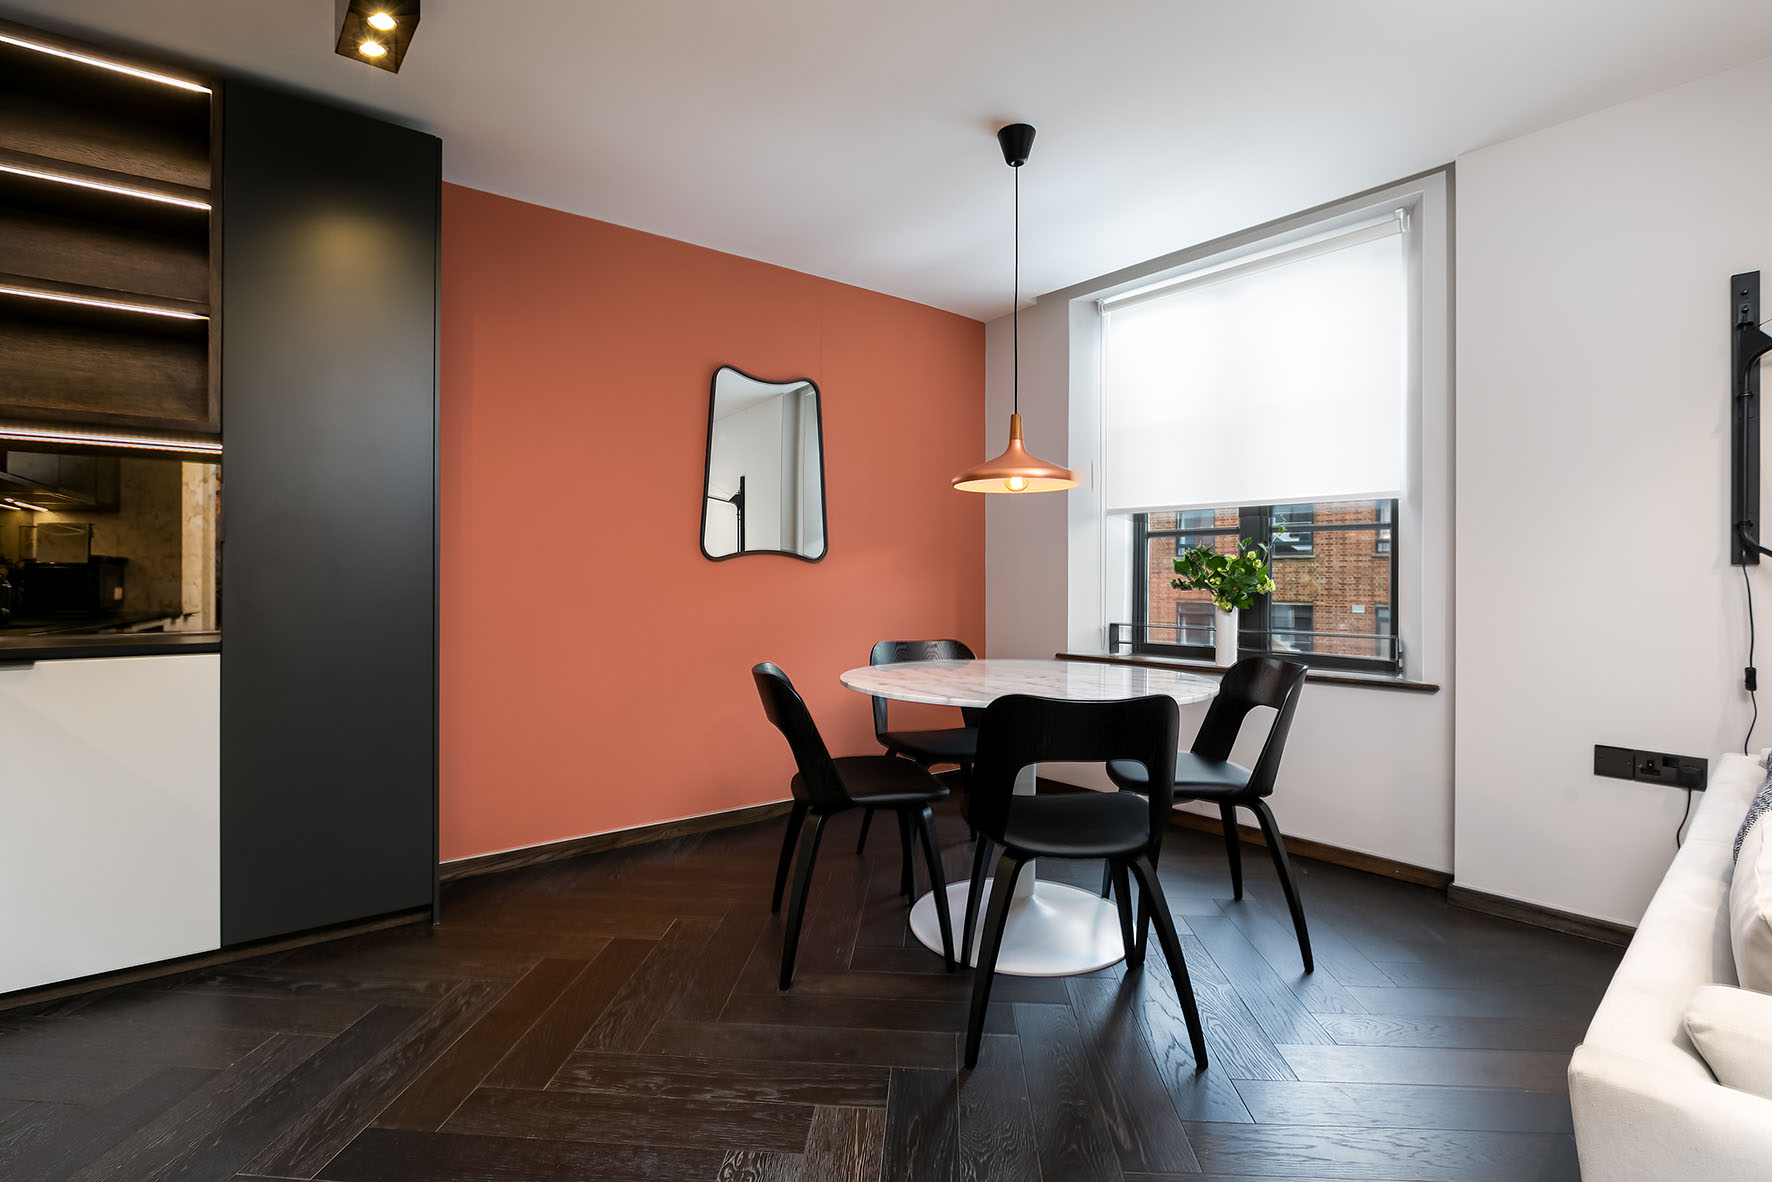 Lovelydays luxury service apartment rental - London - Soho - Noel Street VII - Lovelysuite - 1 bedrooms - 1 bathrooms - Luxury living room - f7a543c0f444 - Lovelydays